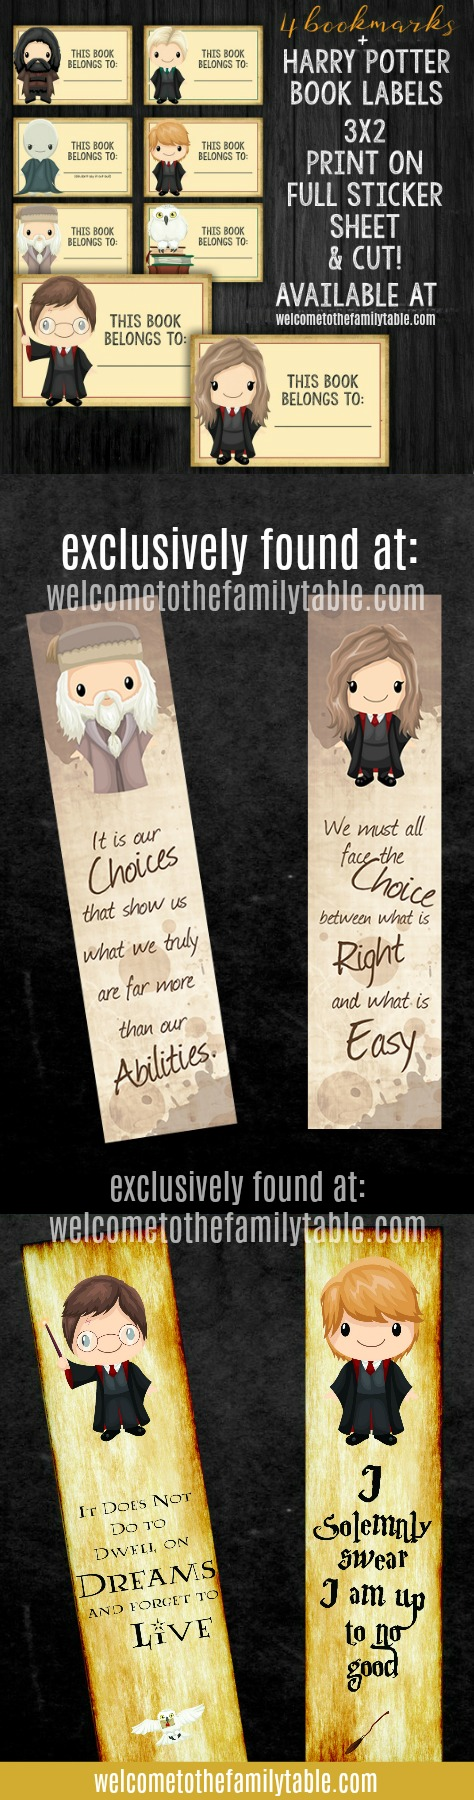 Come grab these adorable Harry Potter Book Labels + Bookmarks for your HP fan! Exlcusively found at Welcome to the Family Table™